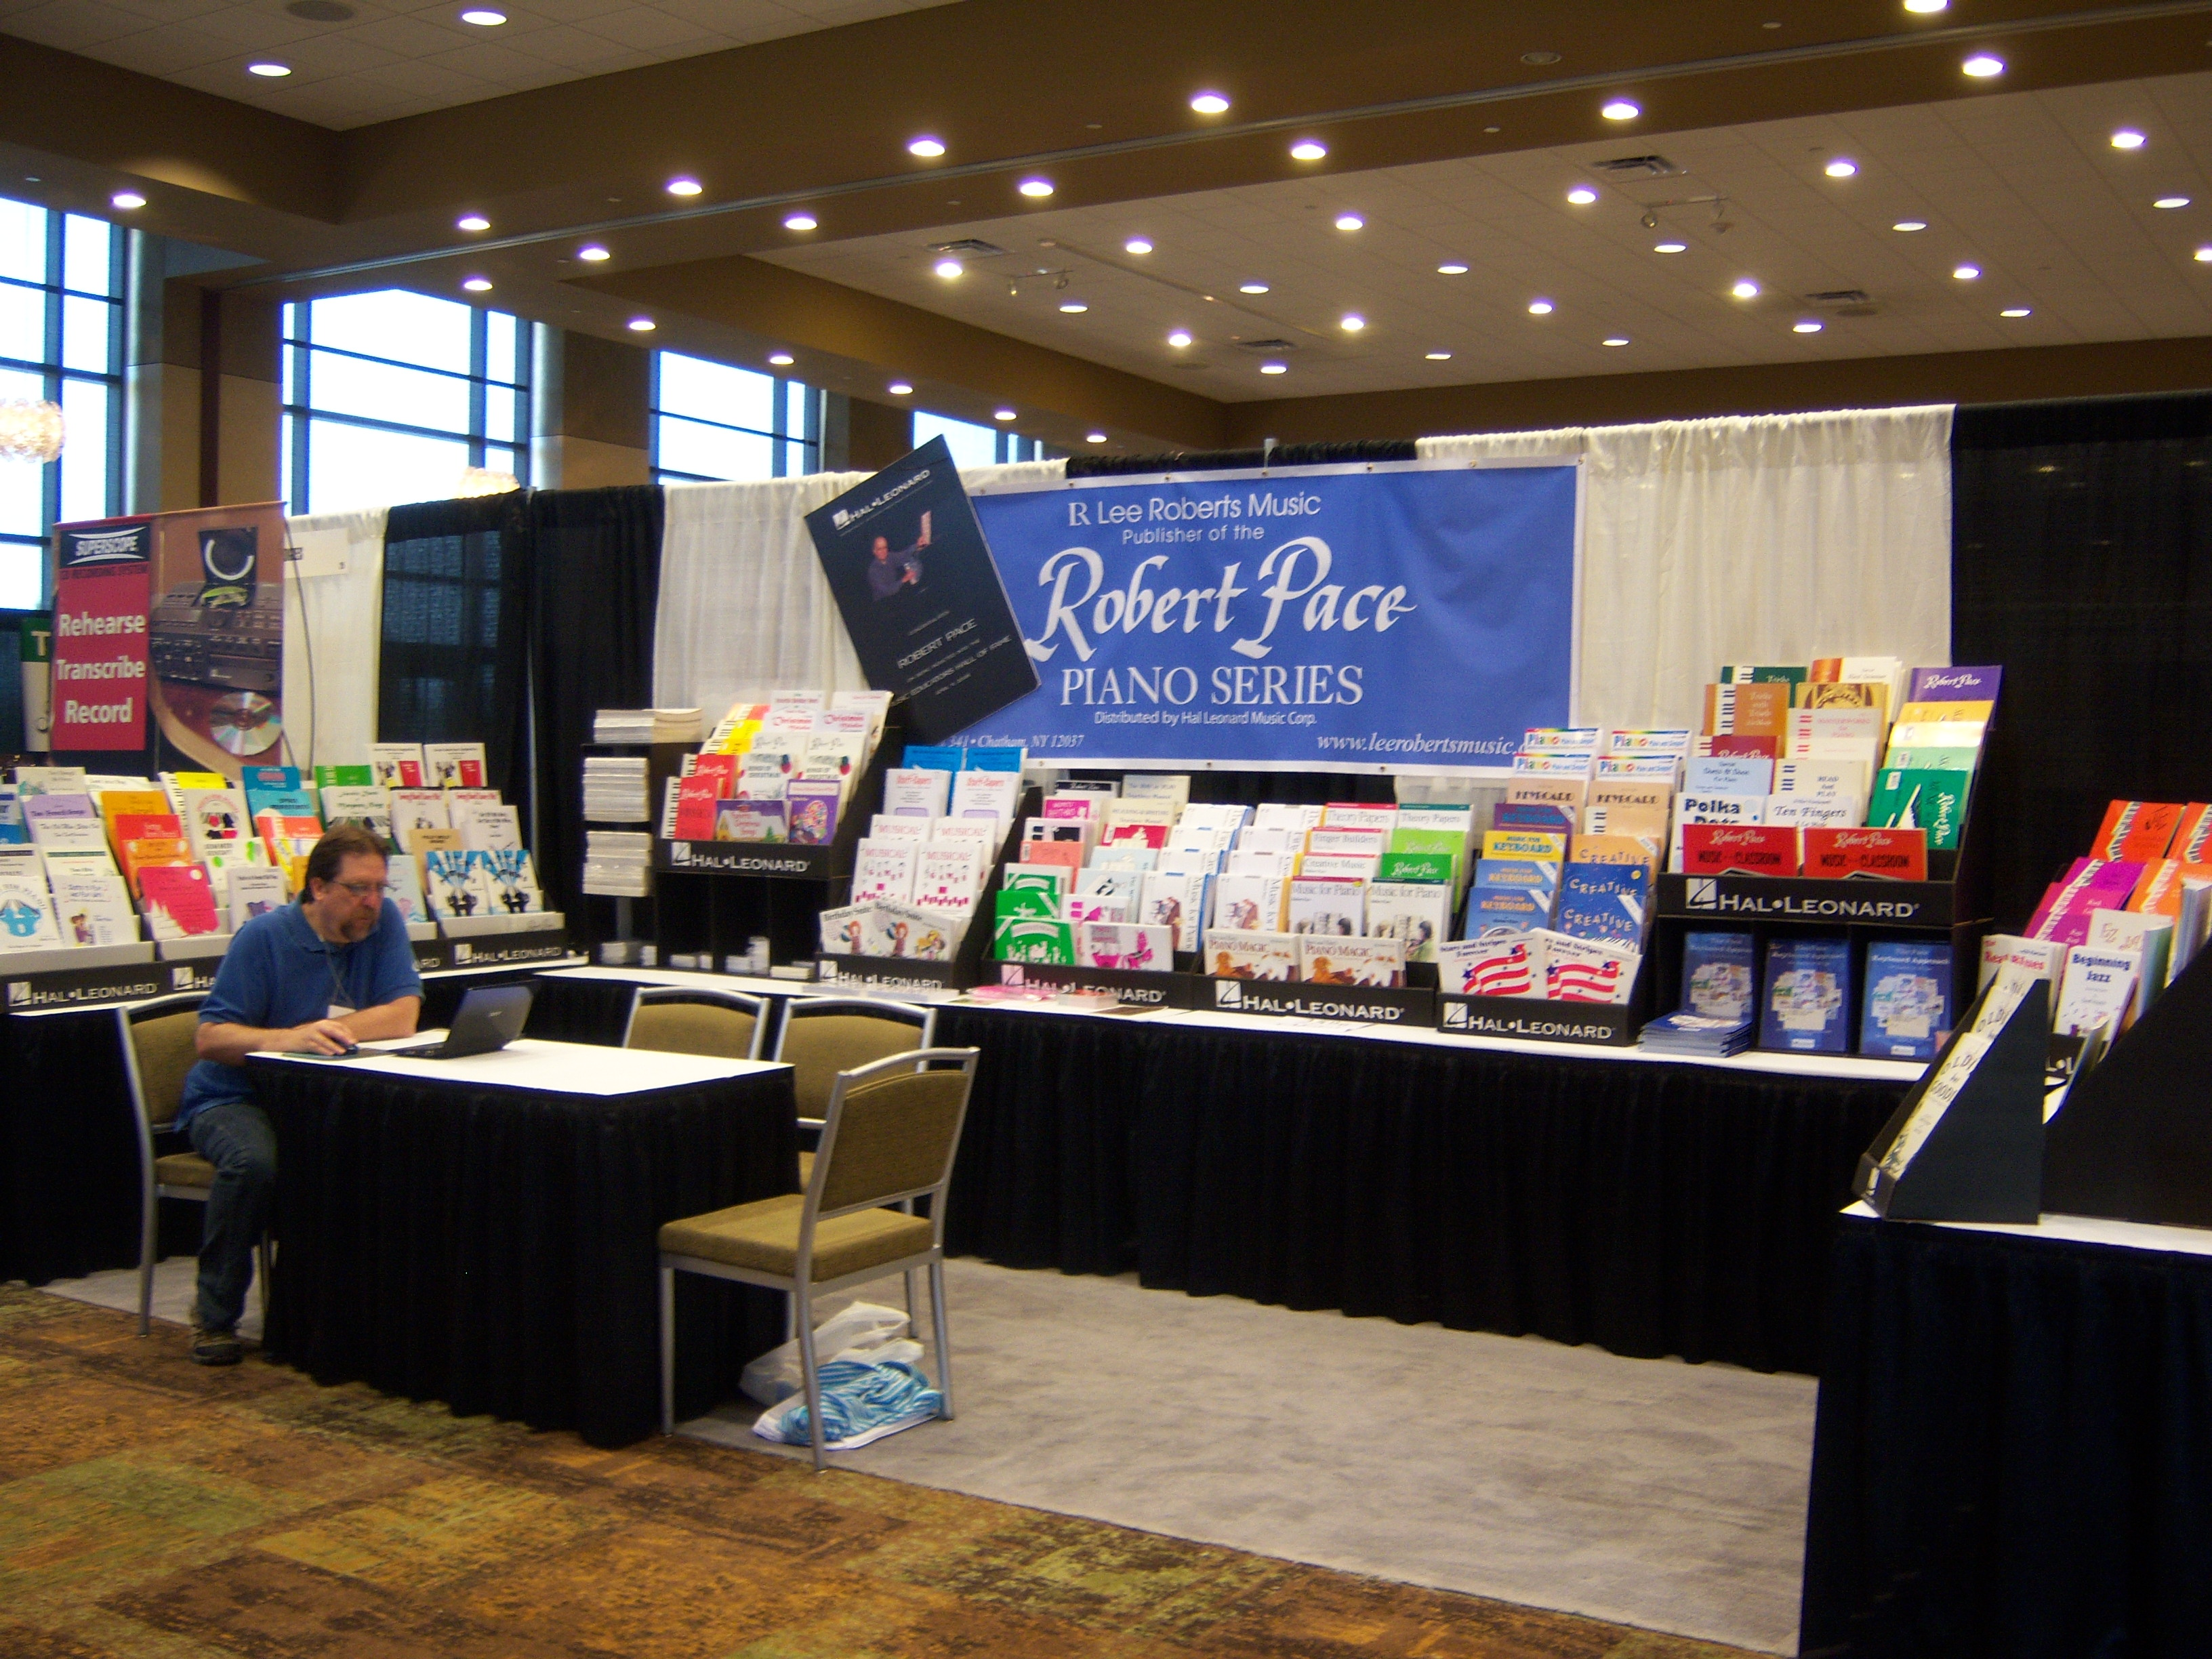 Lee Roberts Music Booth at 2011 National Keyboard Pedagogy Conference